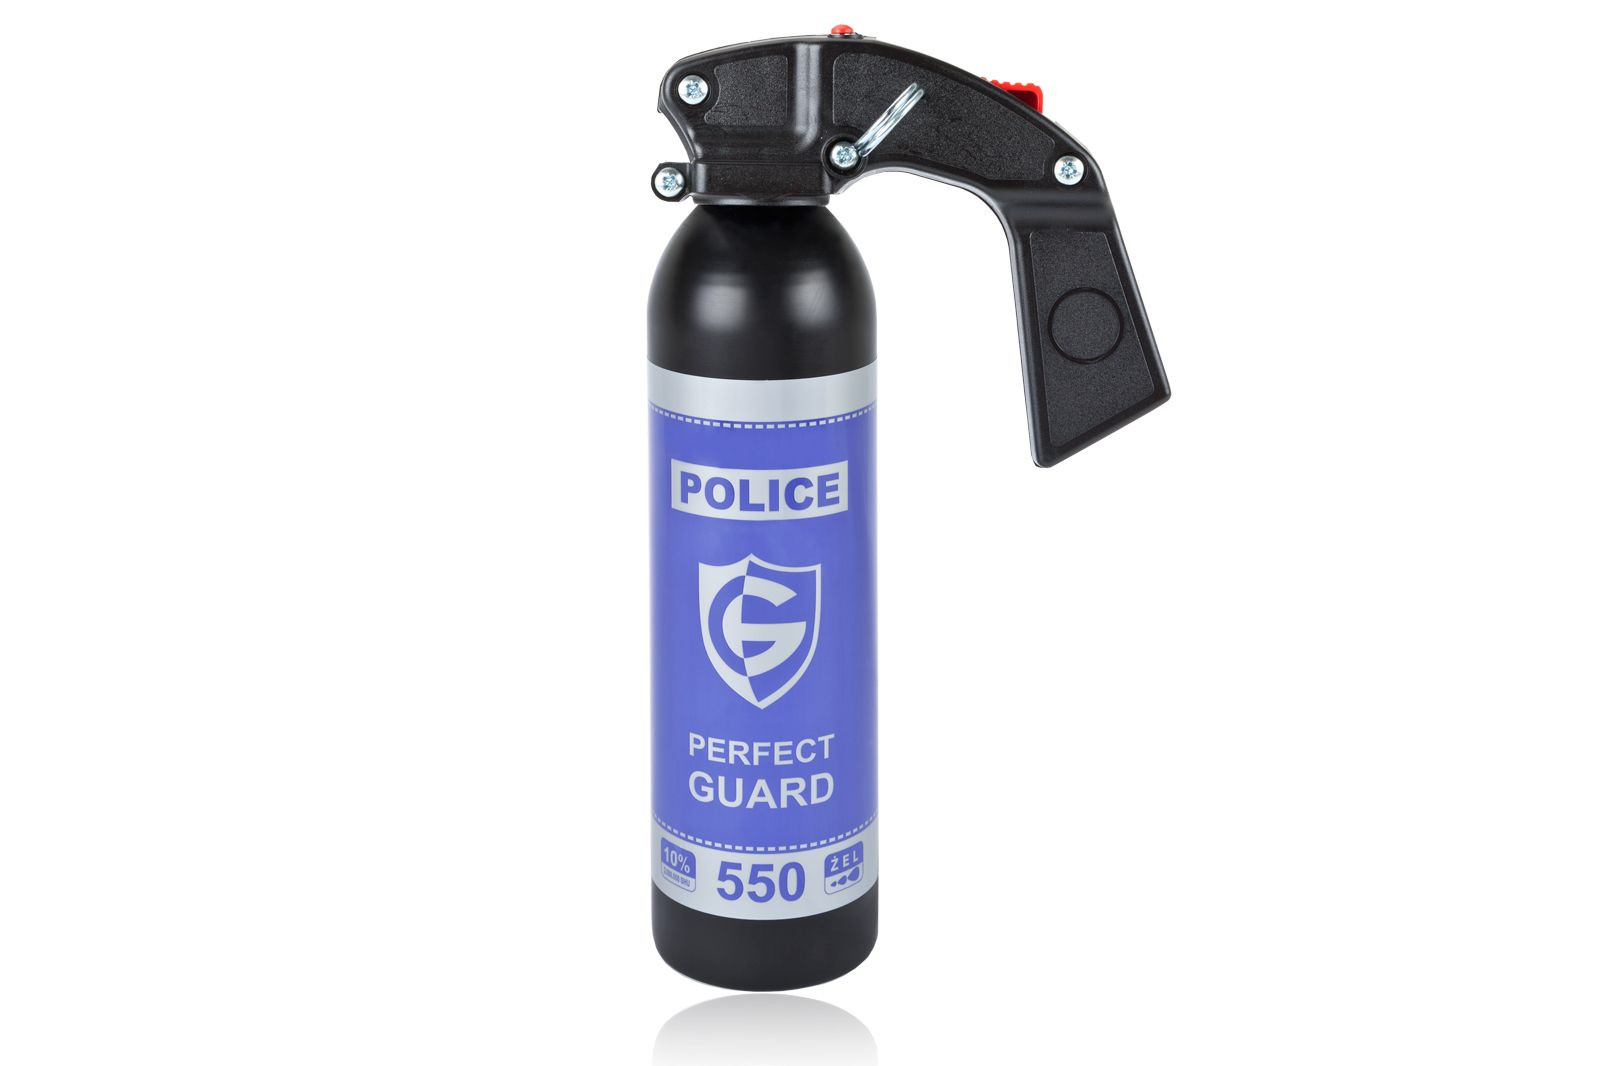 Gaz pieprzowy Police Perfect Guard 550 - 550 ml. żel - gaśnica (PG.550)